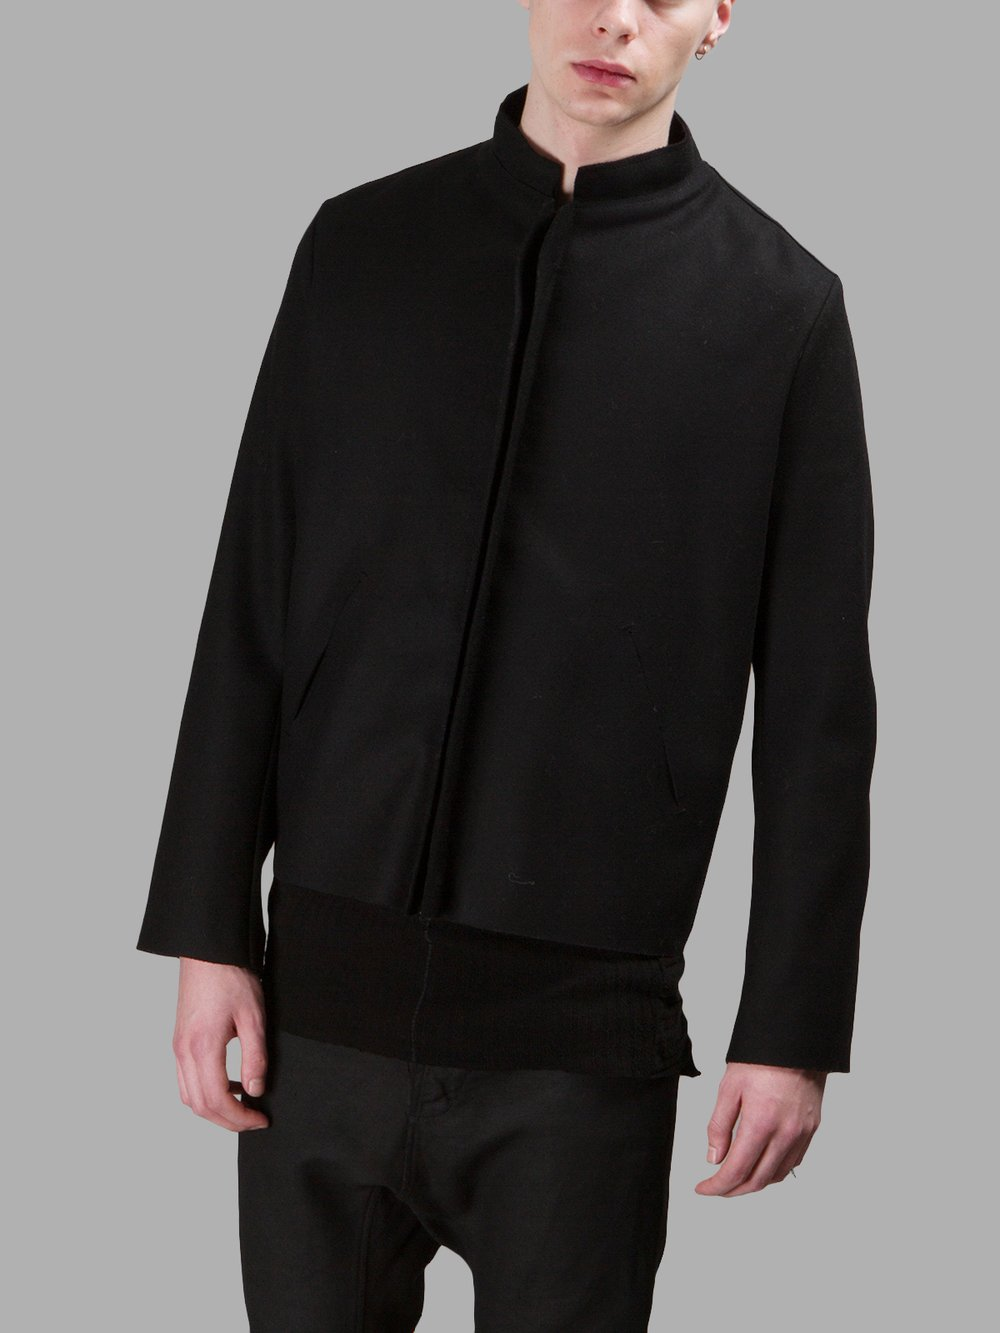 Image of CEDRIC JACQUEMYN Jackets